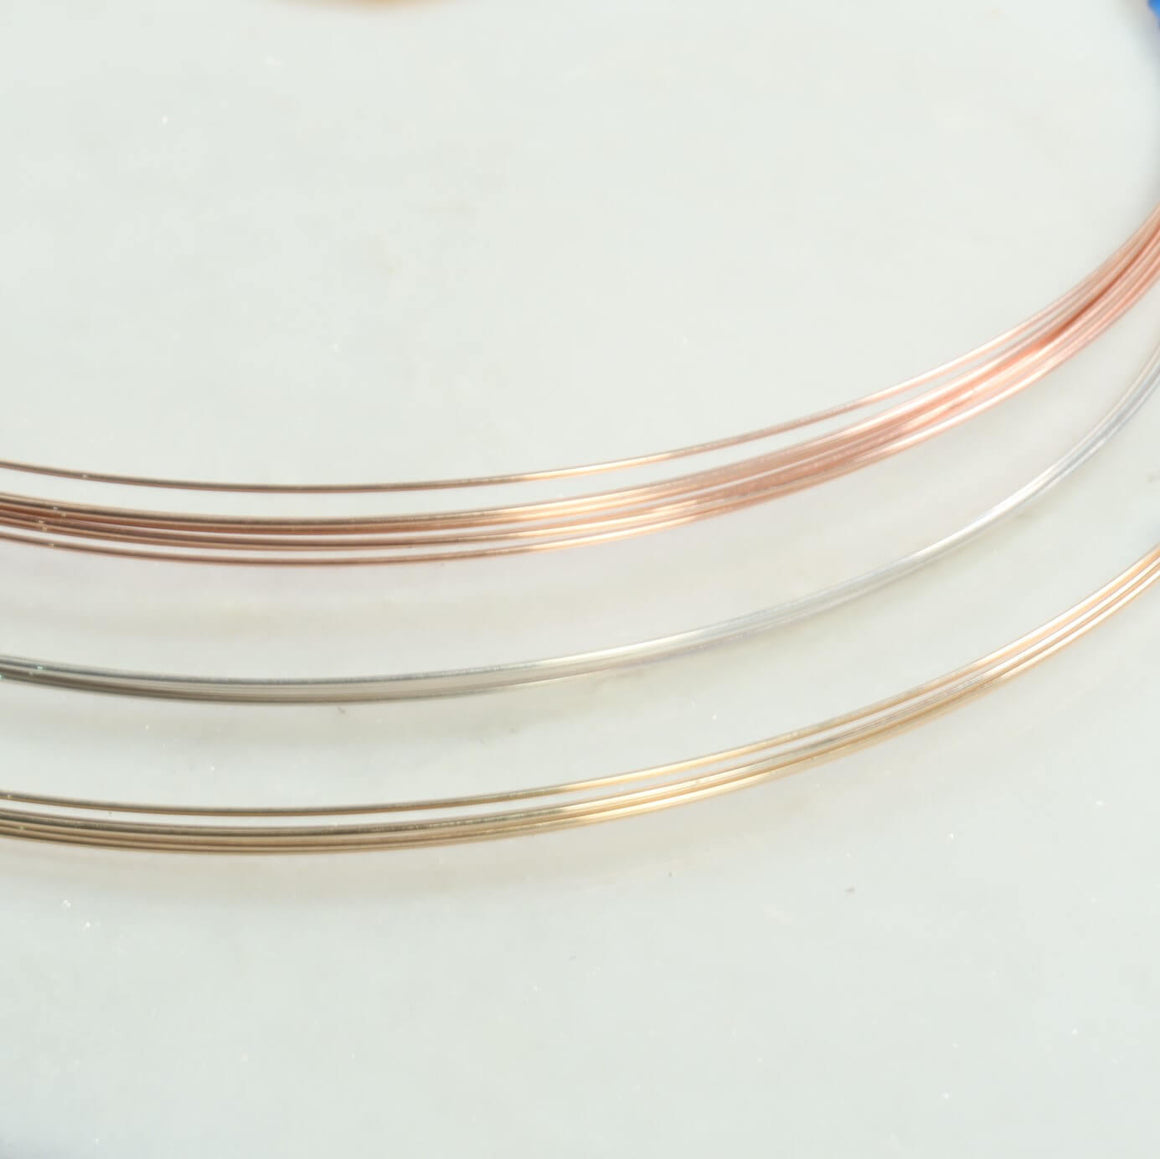 18 gauge wire silver, gold, pink gold